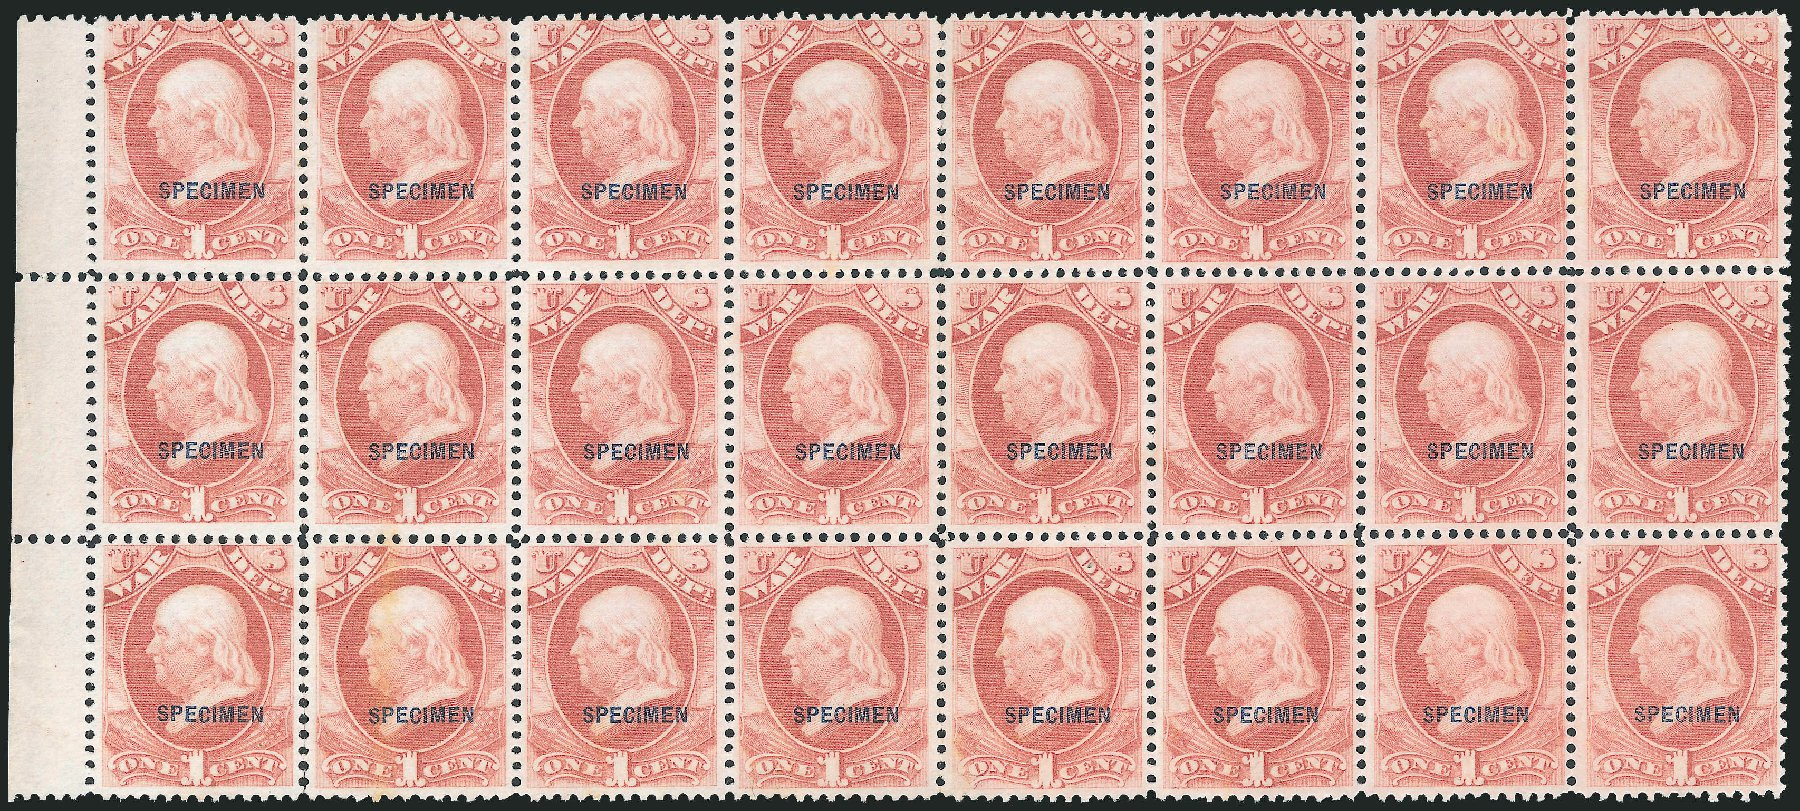 Prices of US Stamps Scott Catalogue O83 - 1c 1873 War Official. Robert Siegel Auction Galleries, Dec 2010, Sale 1003, Lot 5543